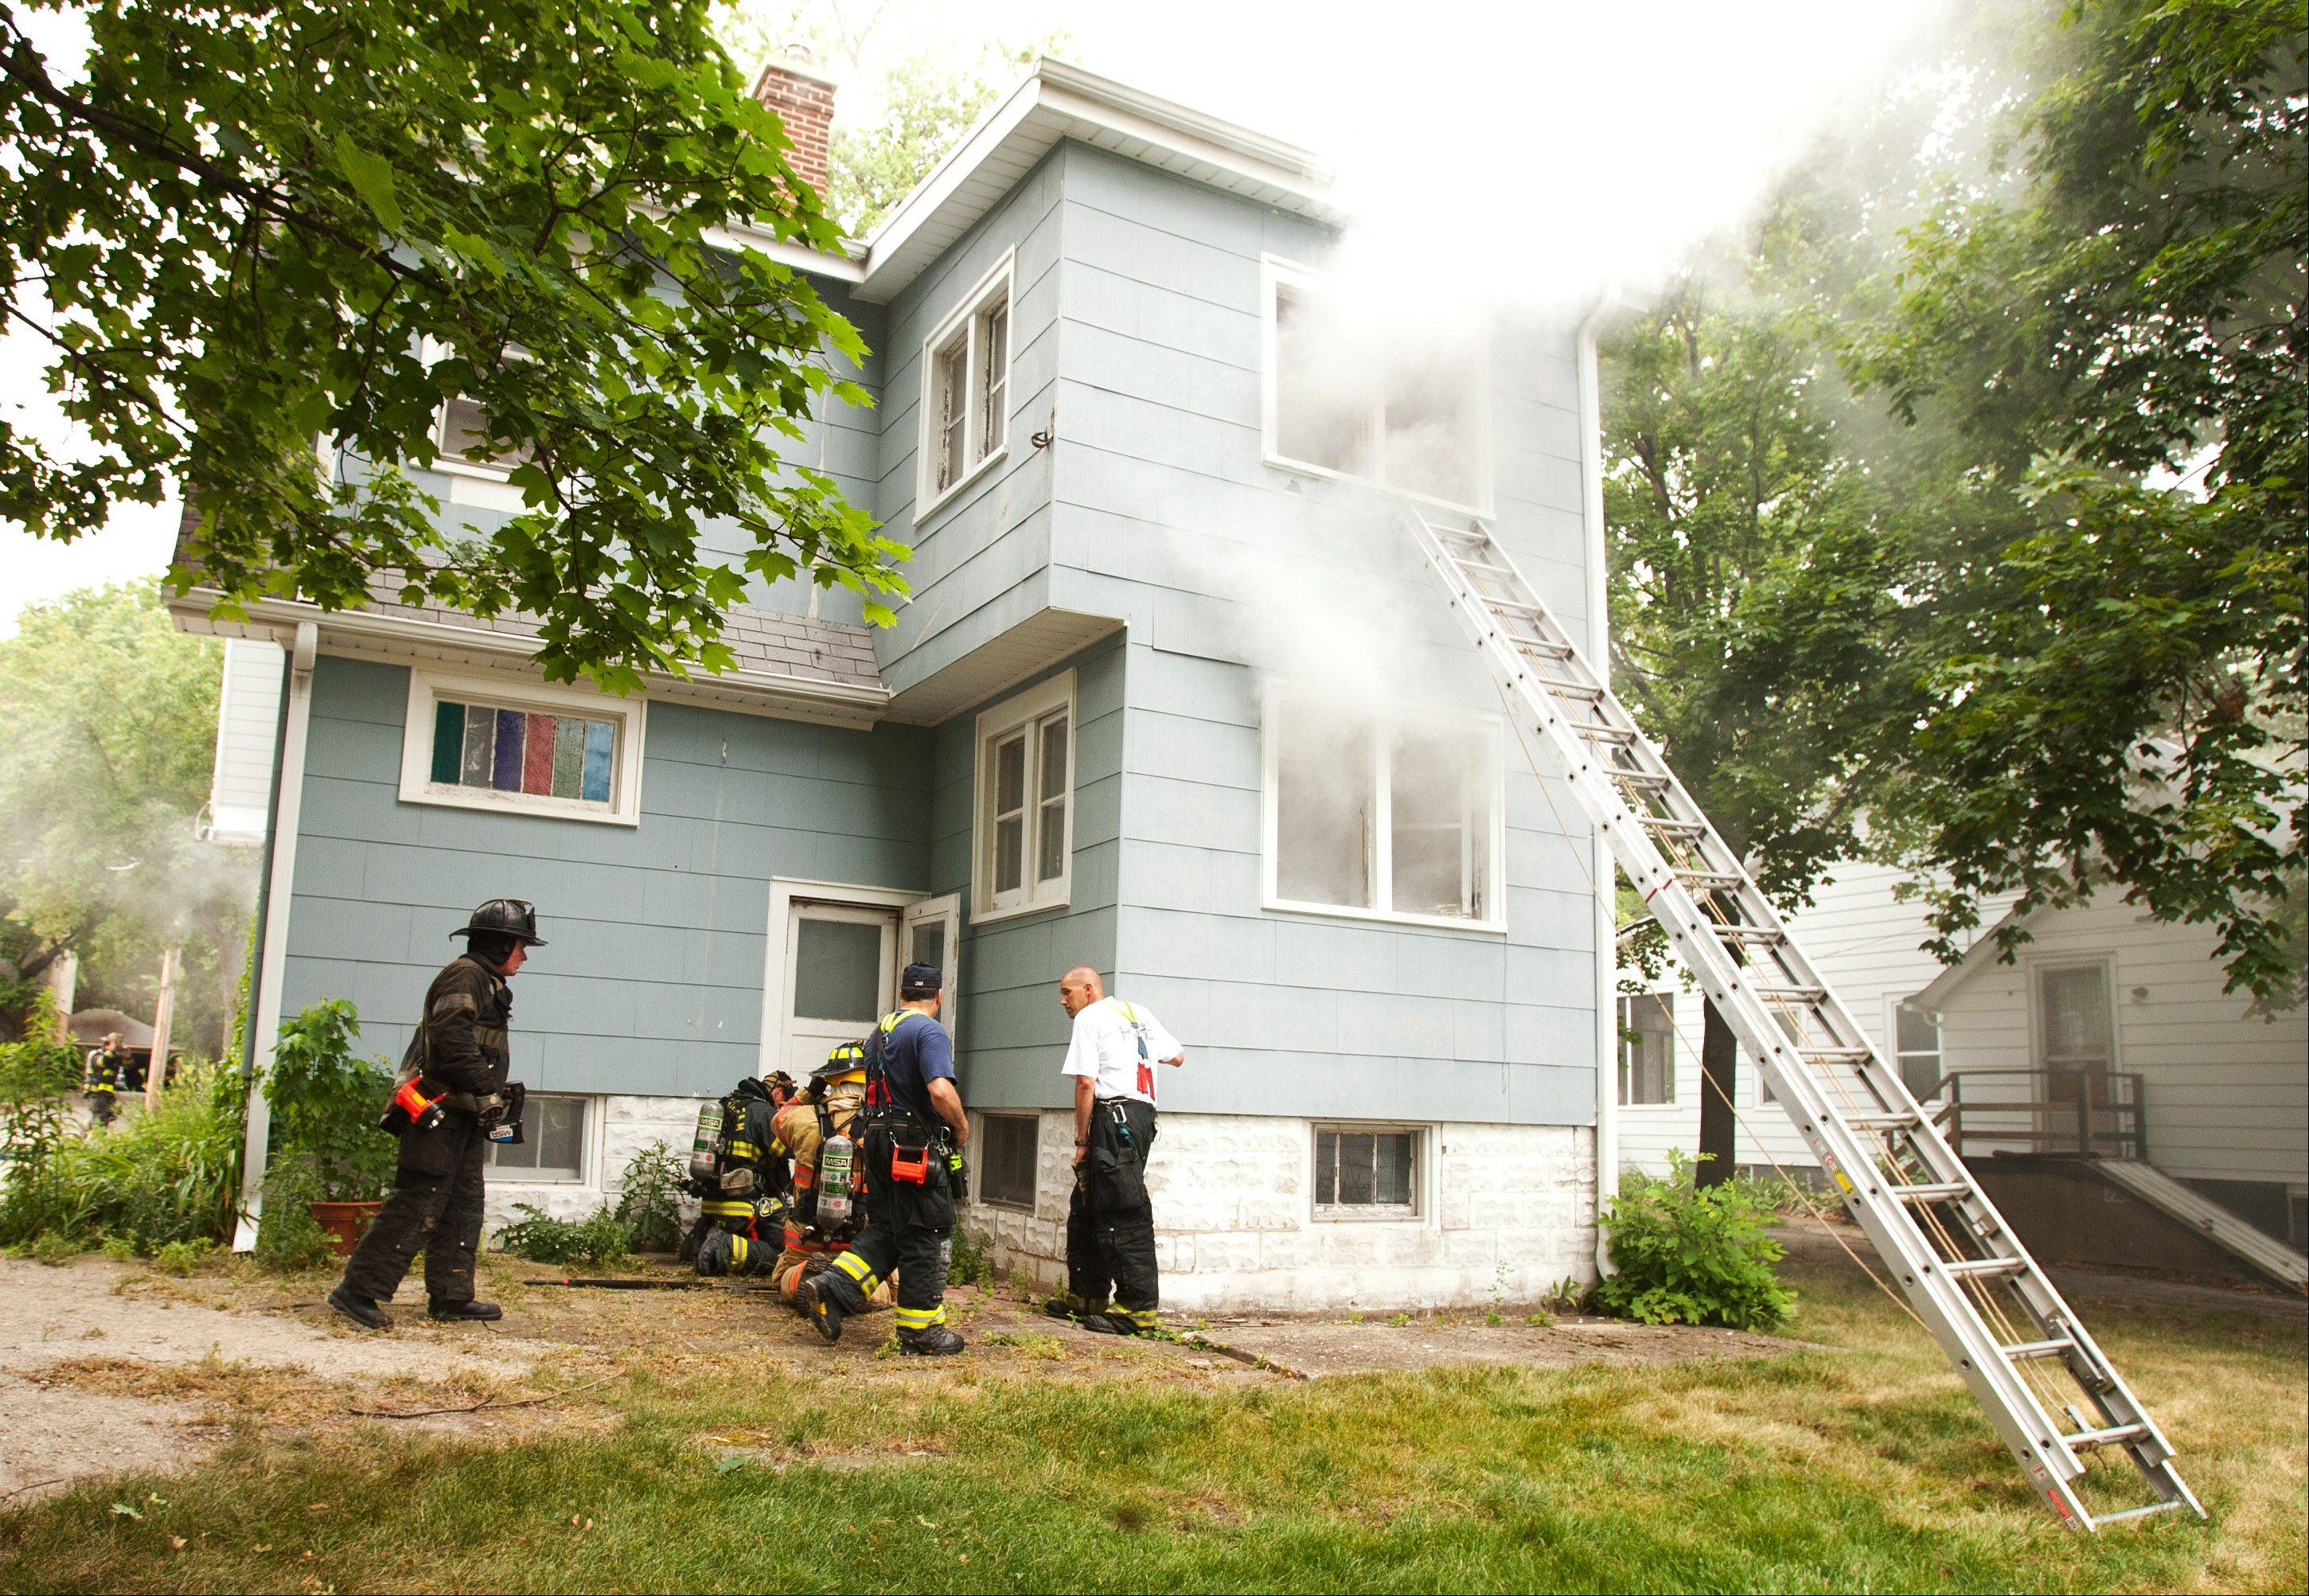 Smoke from a machine was pouring out of a vacant house in Wheaton for the training exercise.